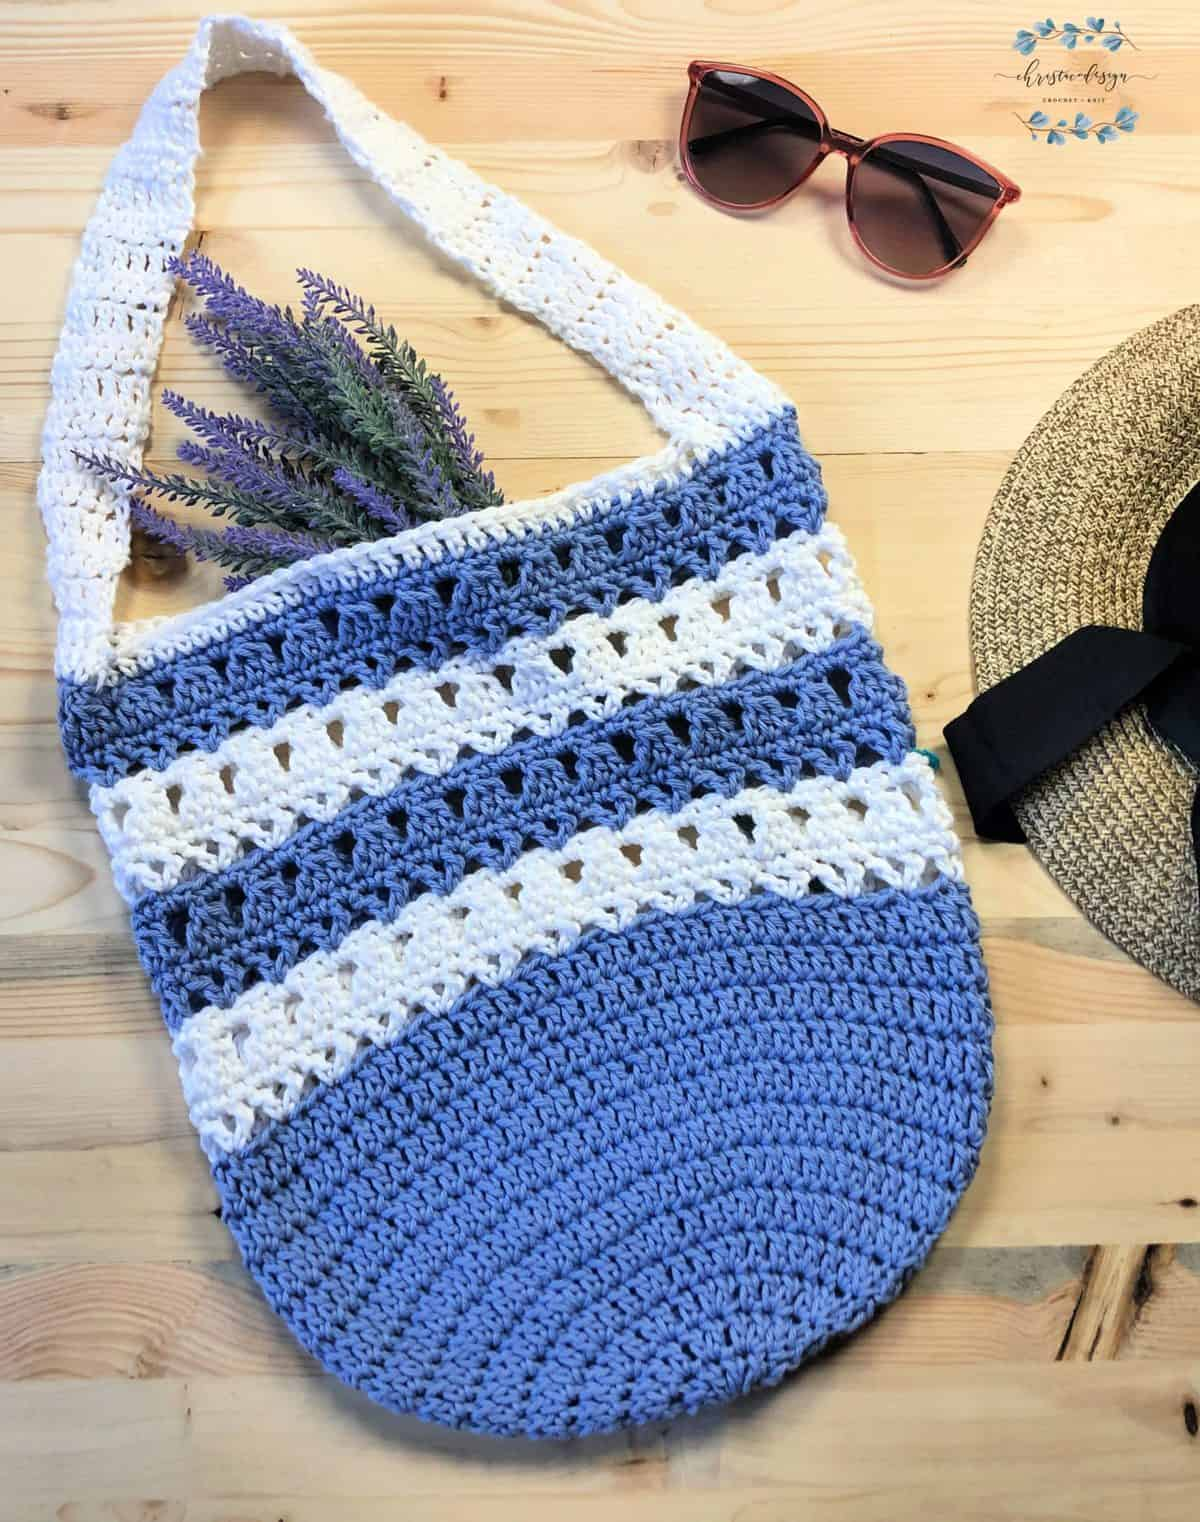 picture of violet striped free crochet market tote pattern flat with glasses and hat flat lay